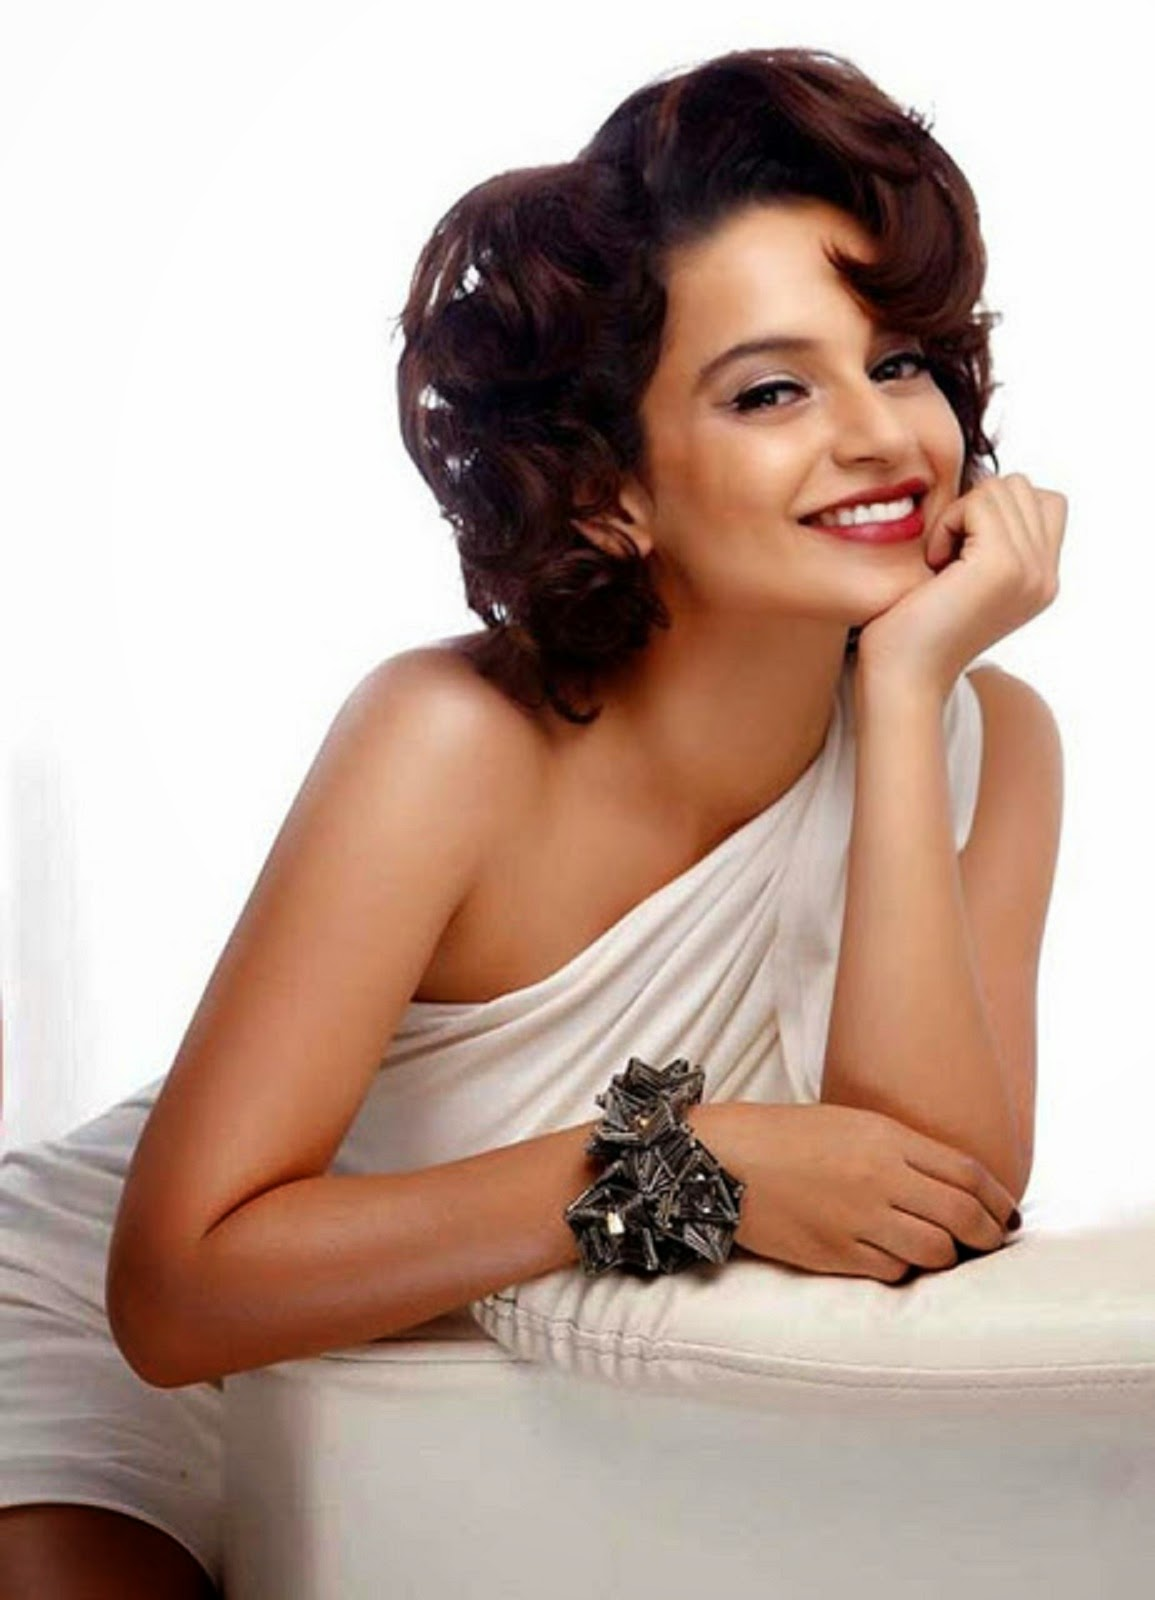 Beautiful Actress Kangana Ranaut HD Wallpaper